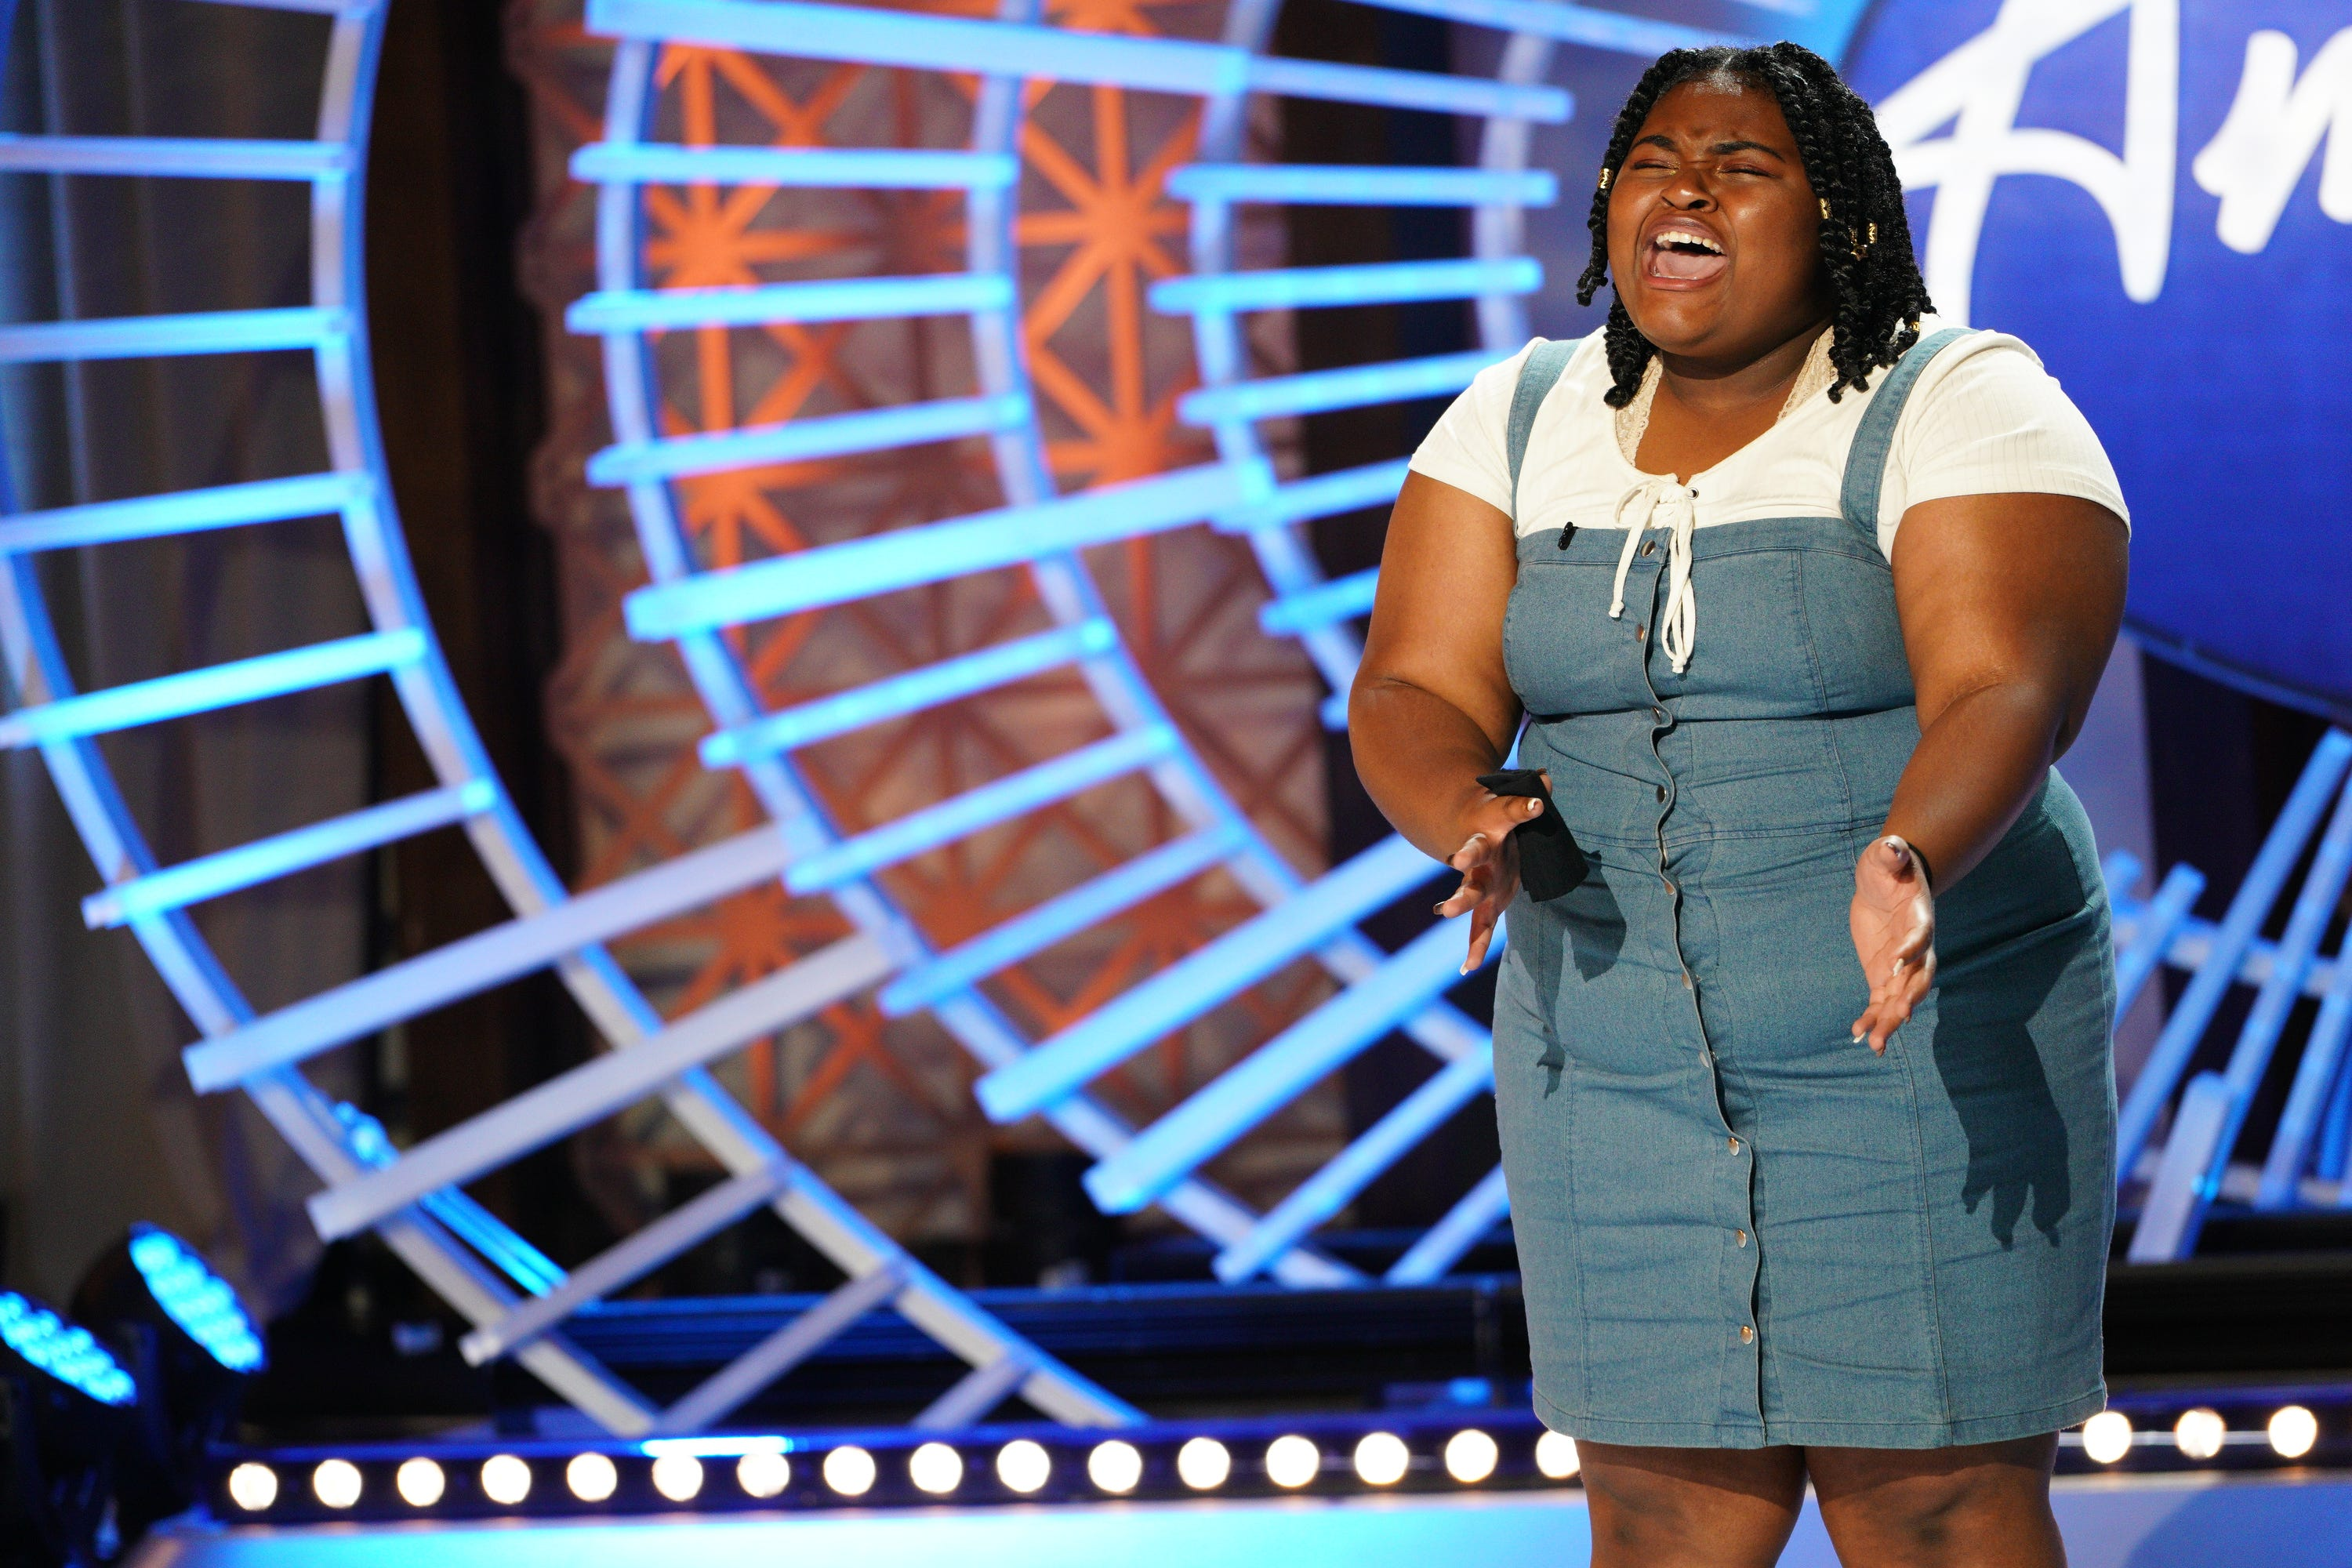 American Idol Milwaukee Native Ronda Felton Moves Lionel Richie To Tears With Her Audition